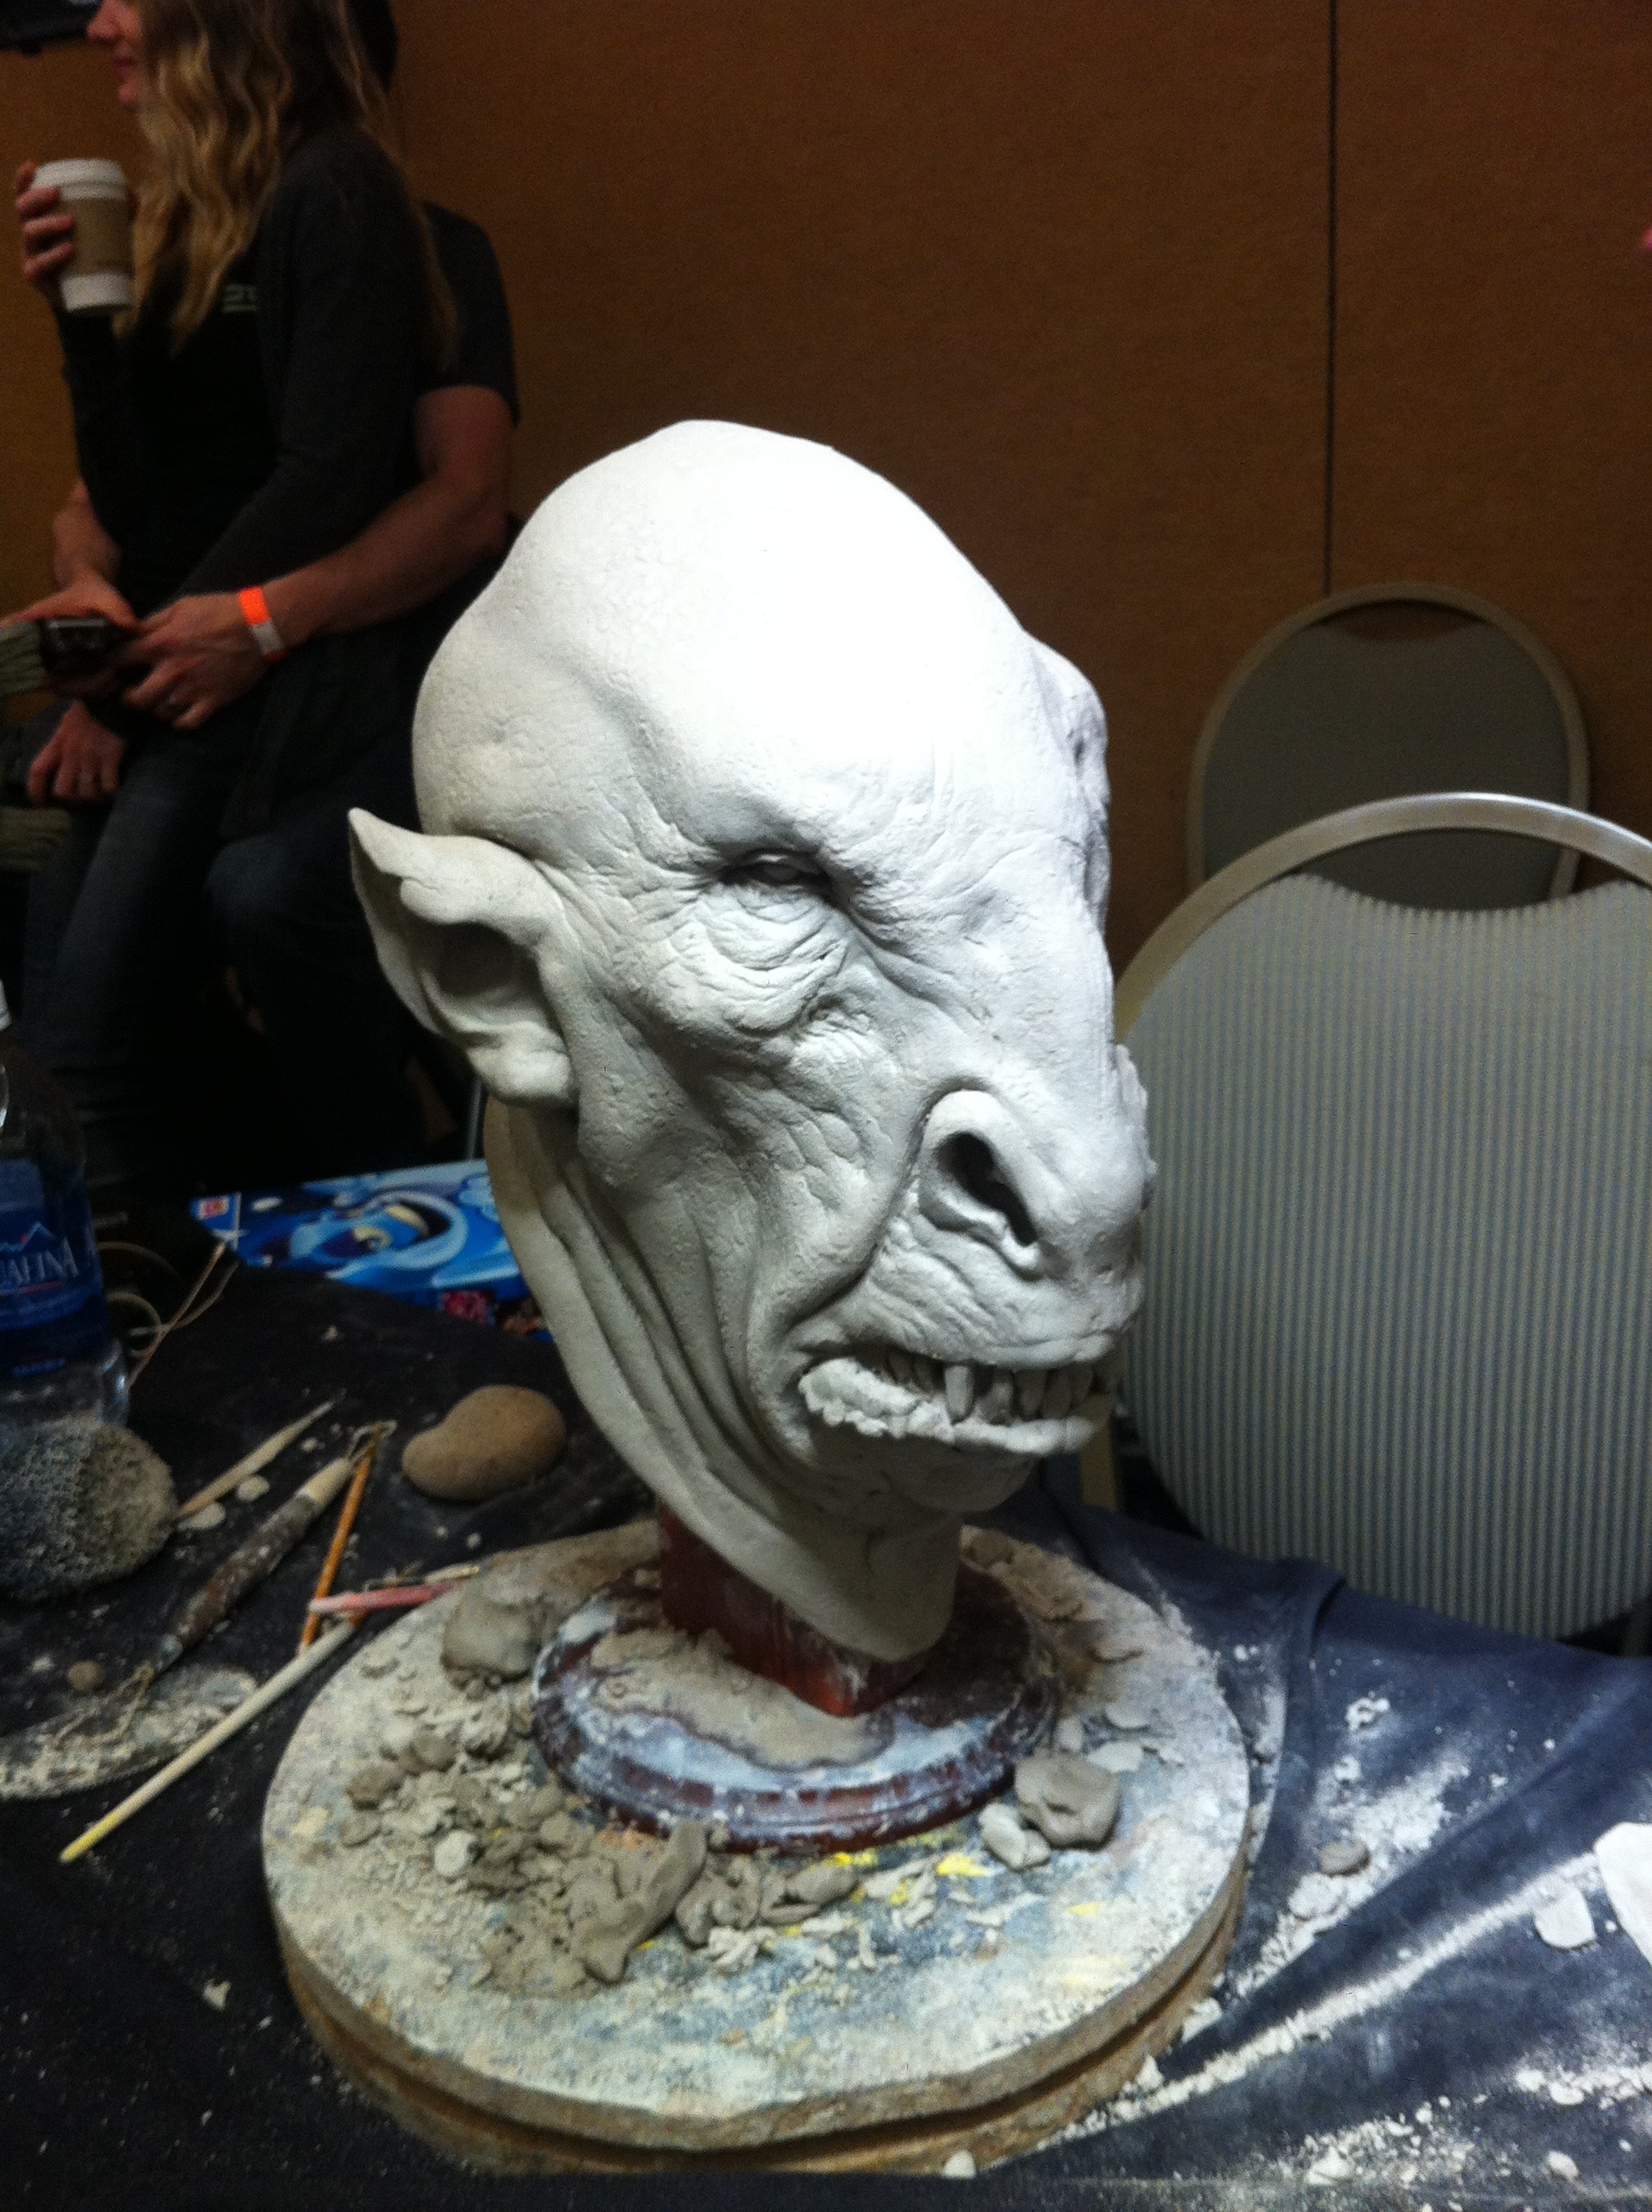 Jordu Schell made this amazing creature from beginning to end over the weekend!